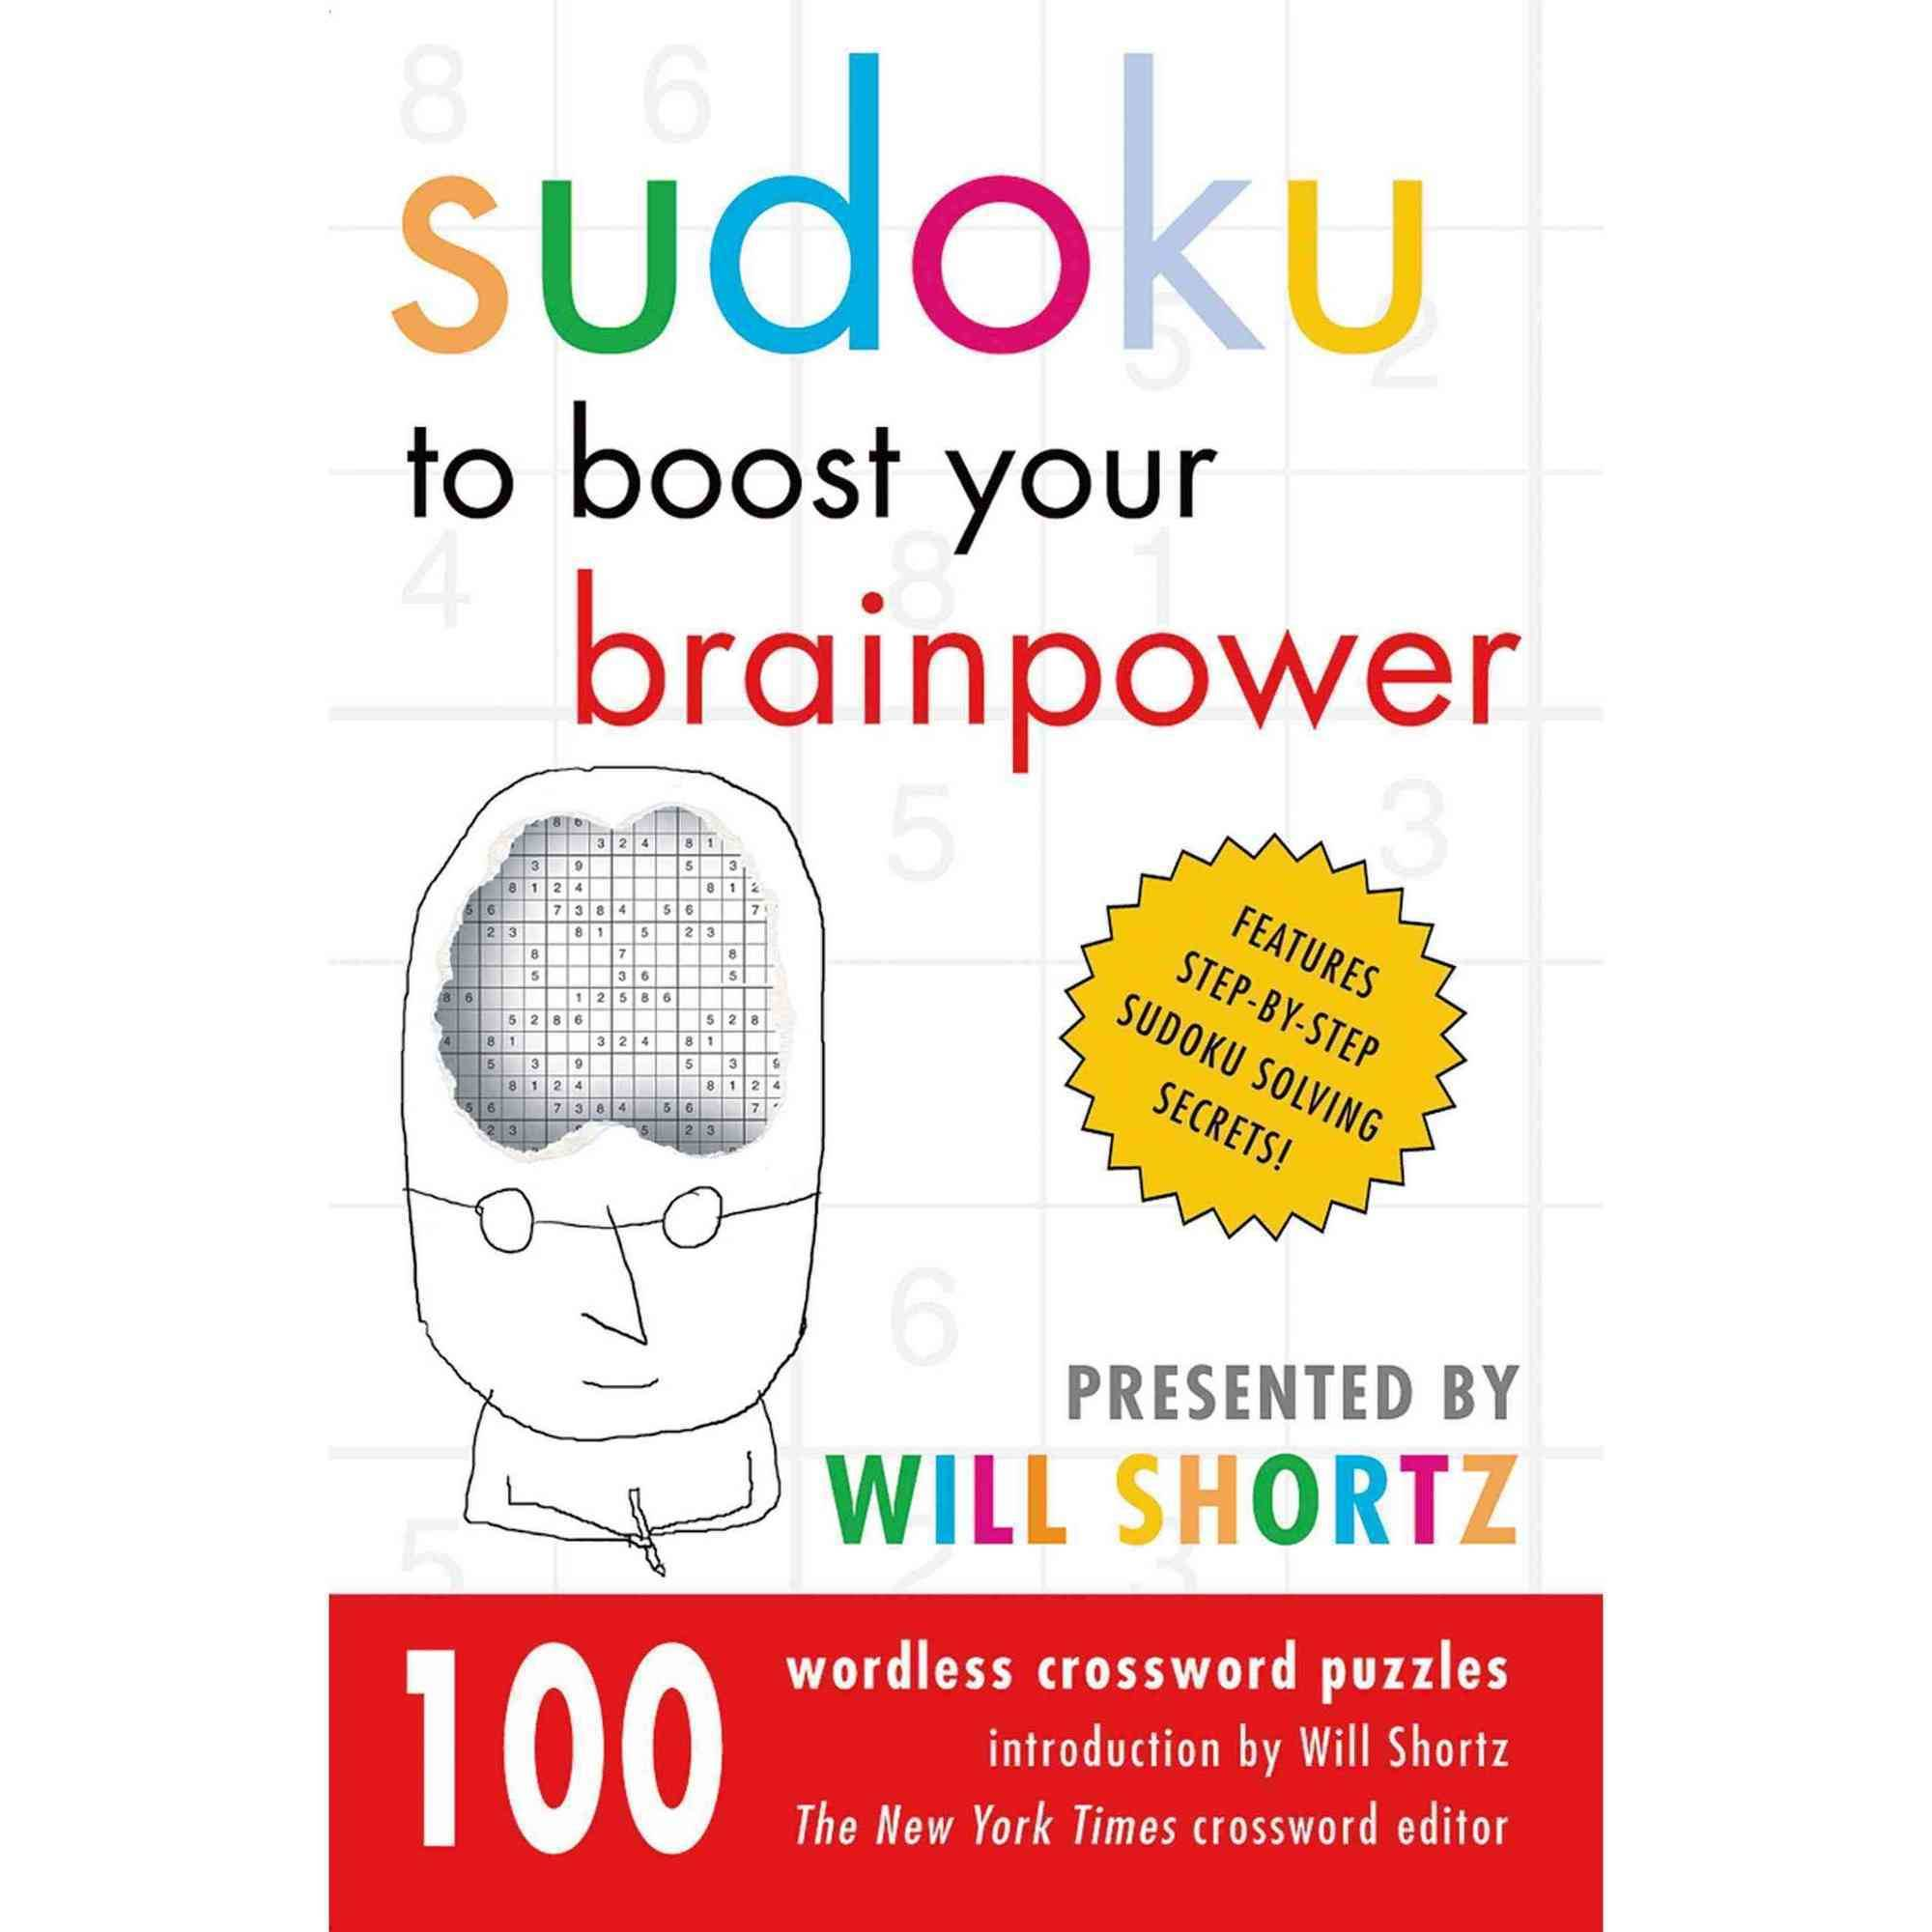 Sudoku to Boost Your Brainpower Presented by Will Shortz: 100 Wordless Crossword Puzzles